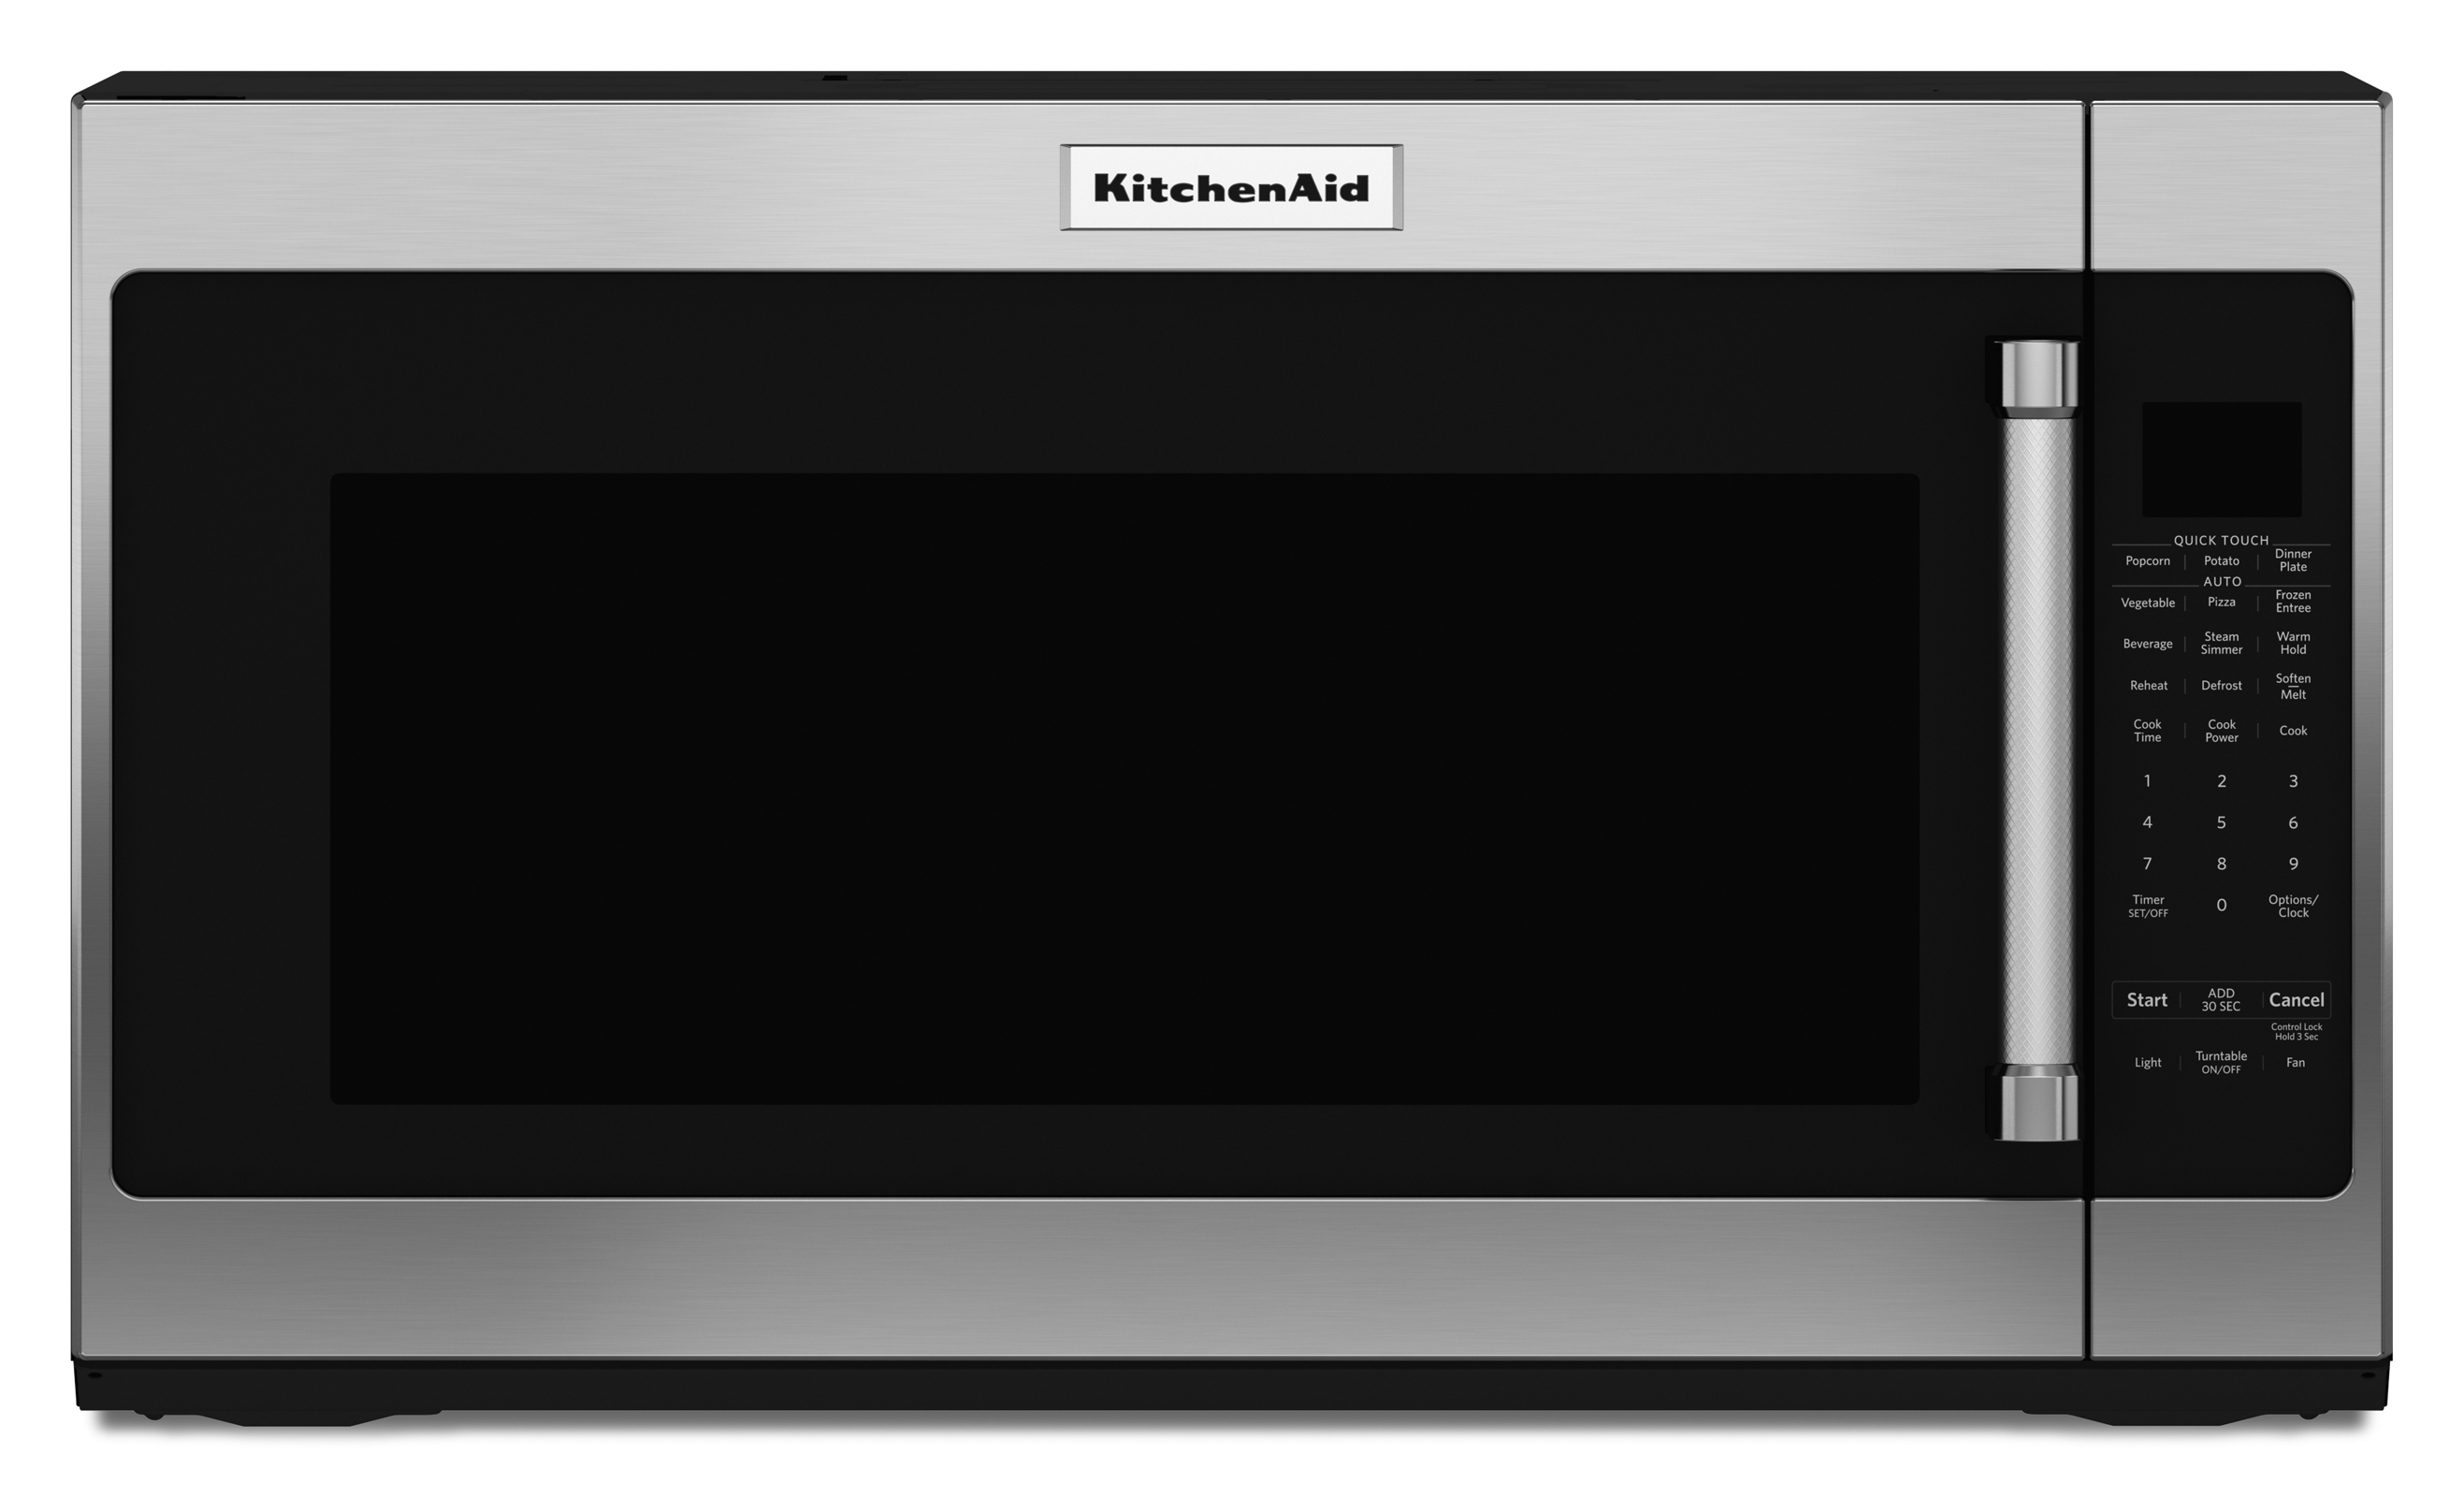 KitchenAid KMHS120ESS 2.0 cu. ft. 1000-Watt Microwave Oven - Stainless Steel